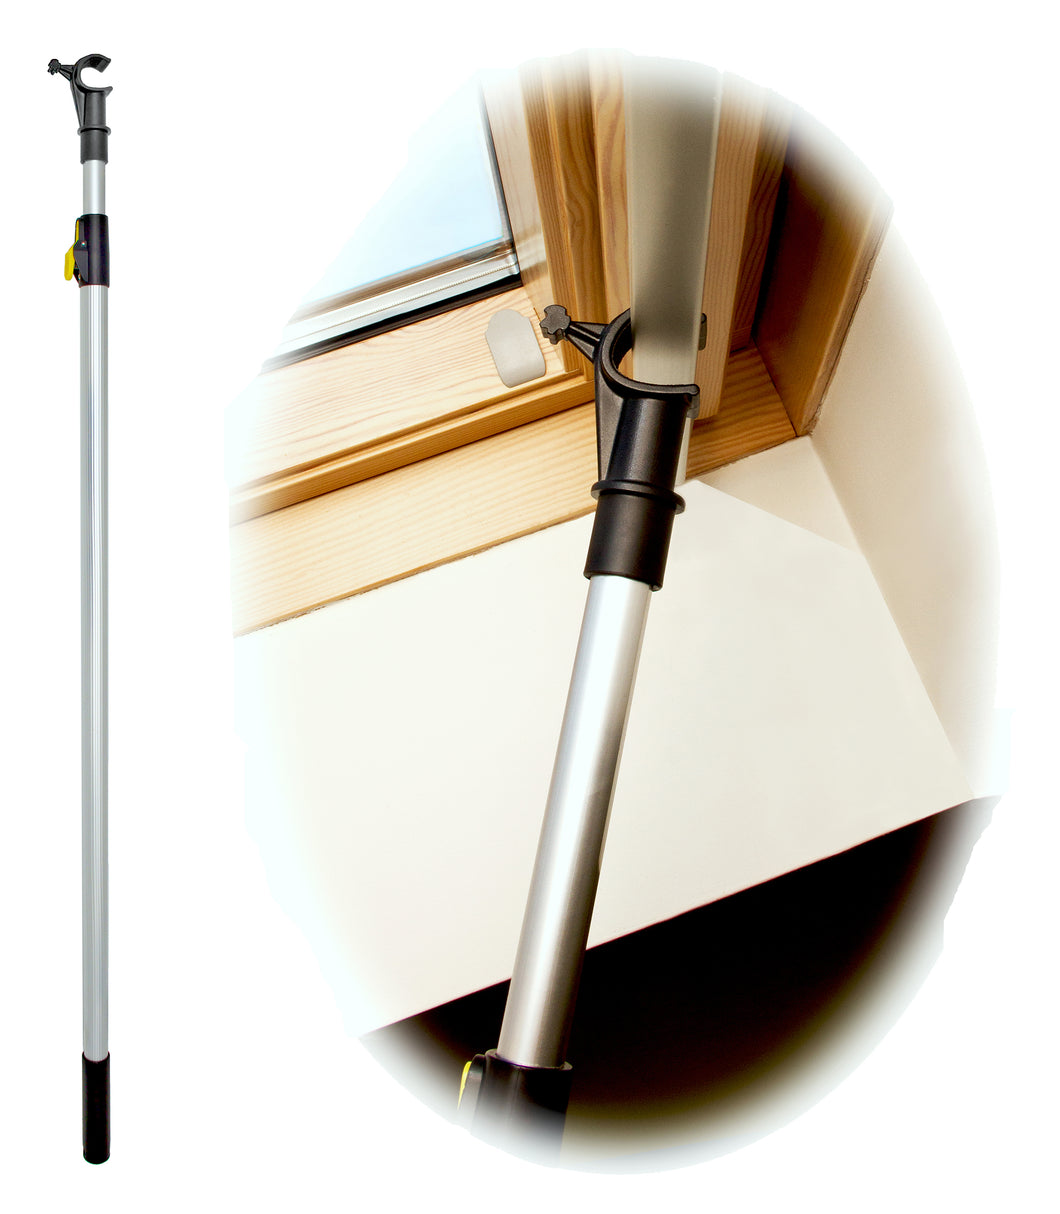 WinHux Window Pole 1.2-2.0 metre Silver - Free Delivery